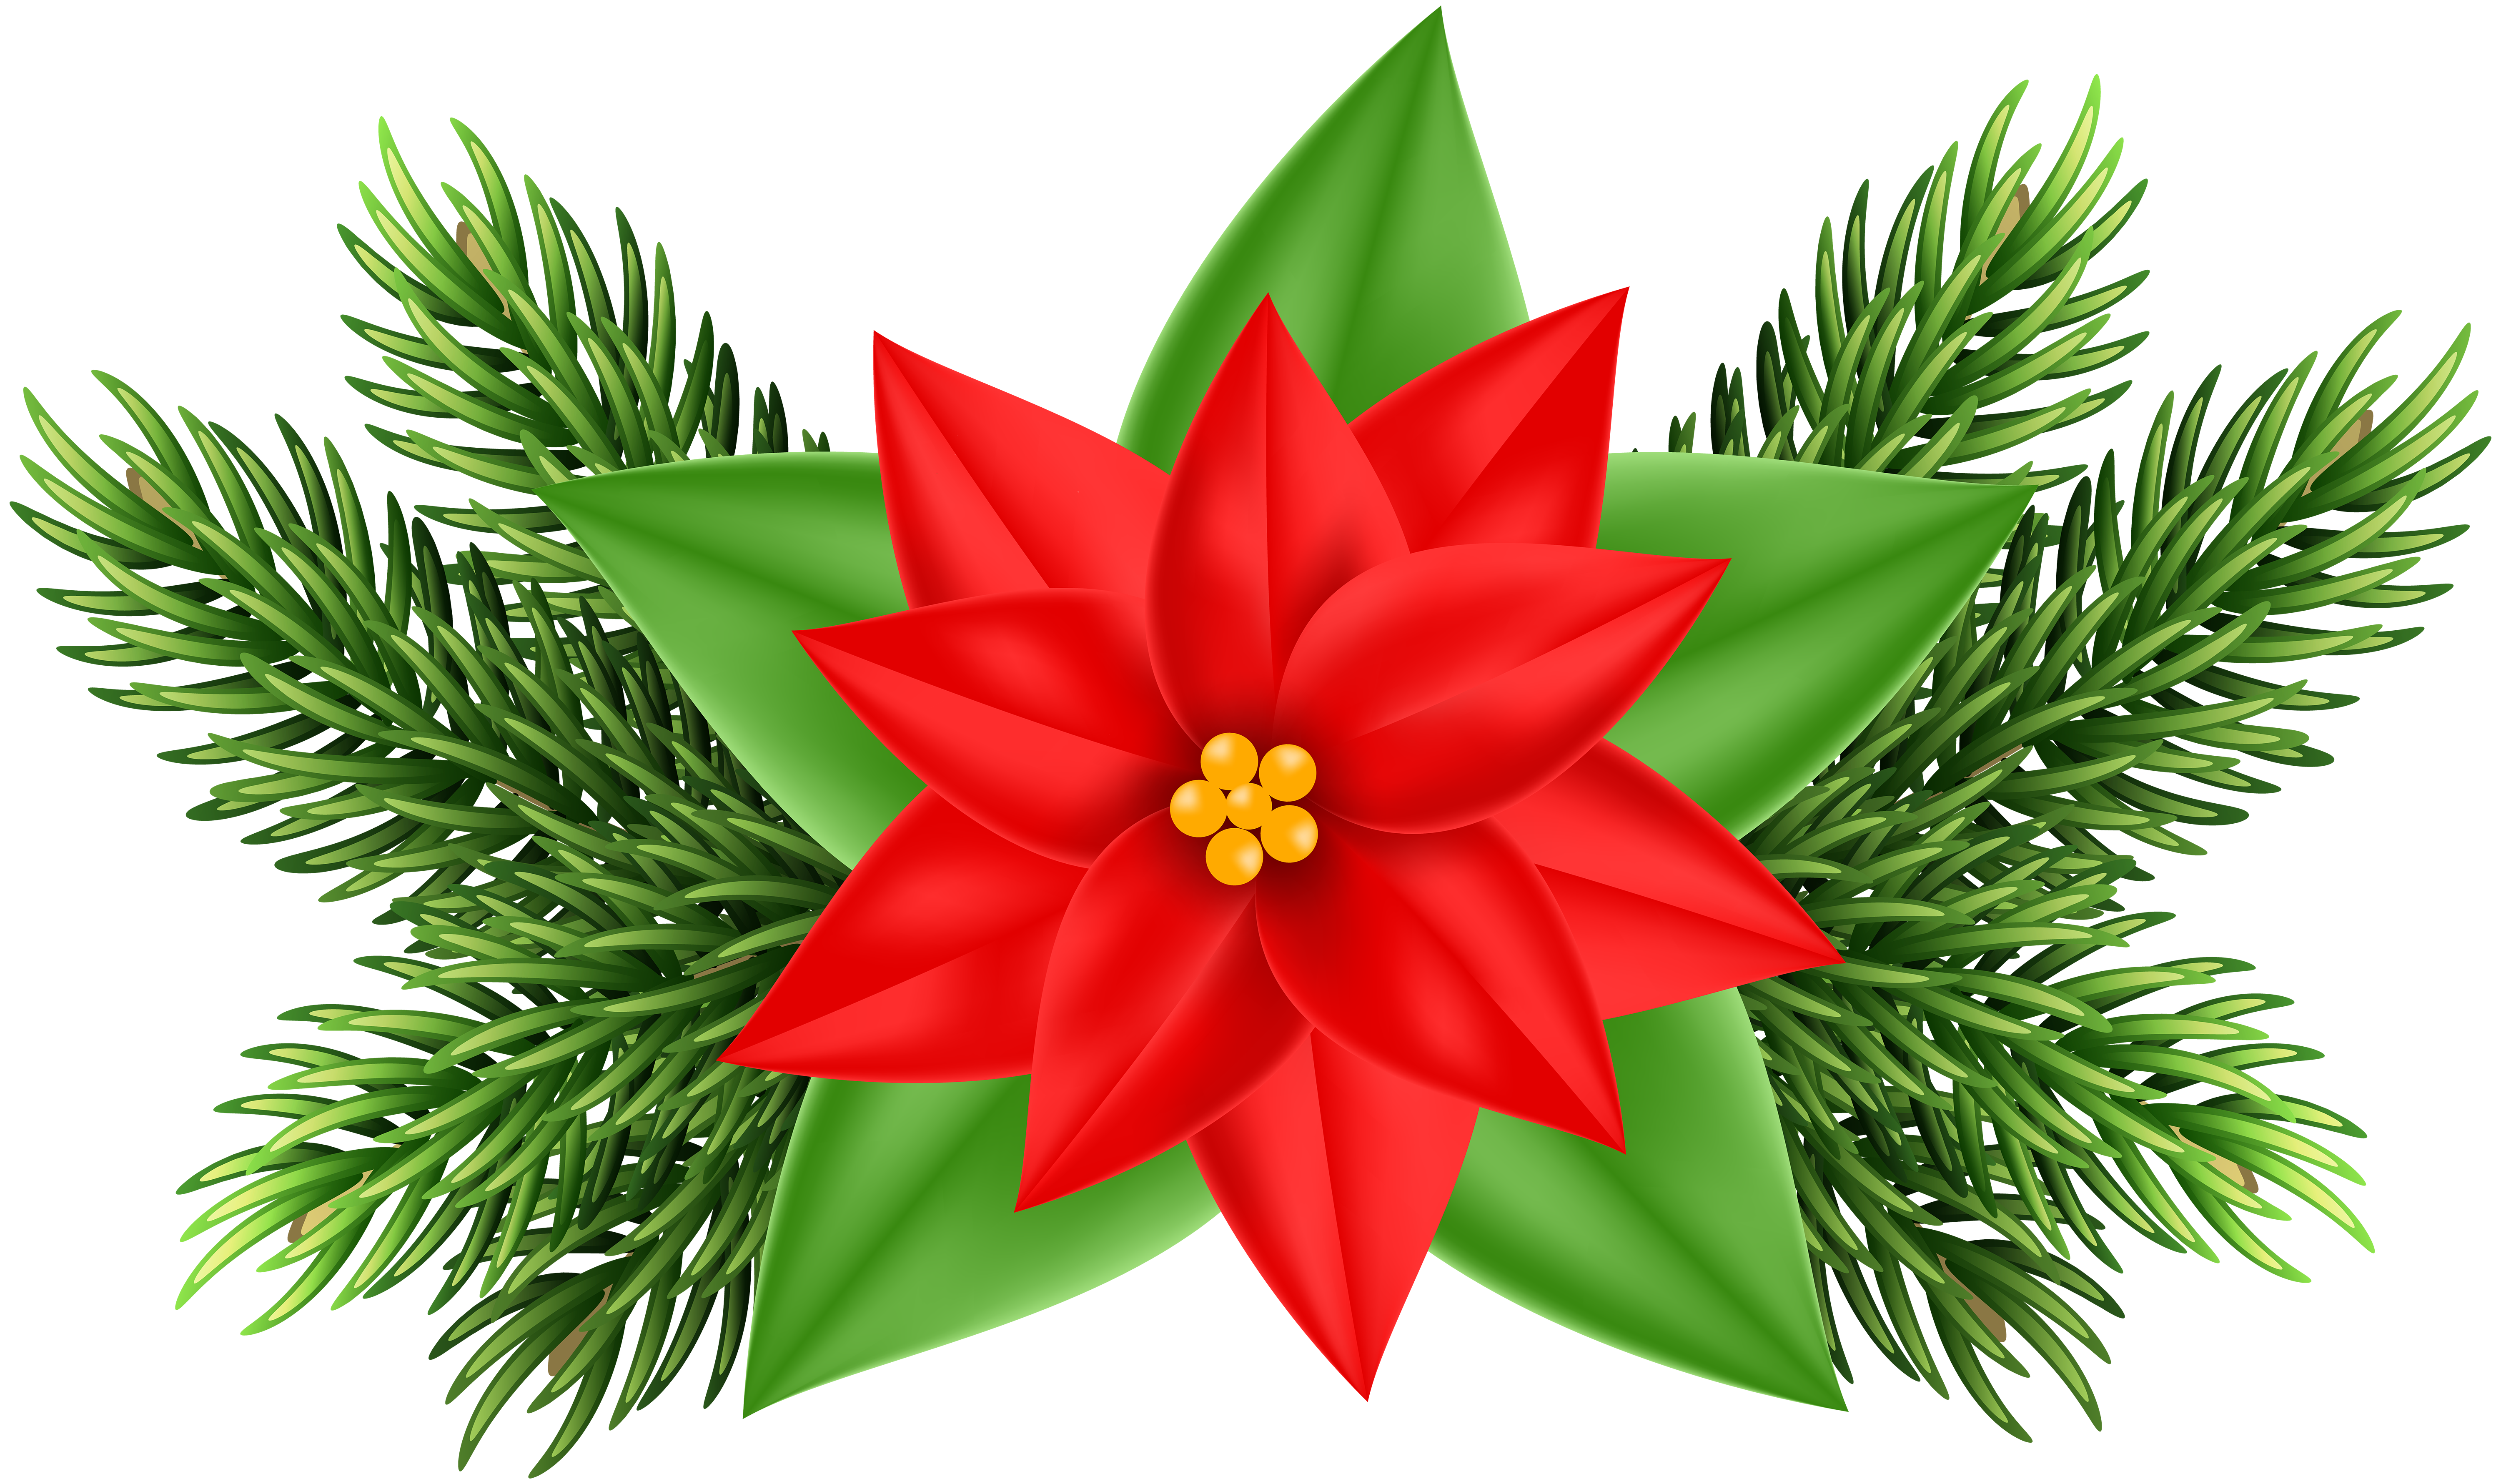 Poinsettia clipart poinsetta. Flower at getdrawings com